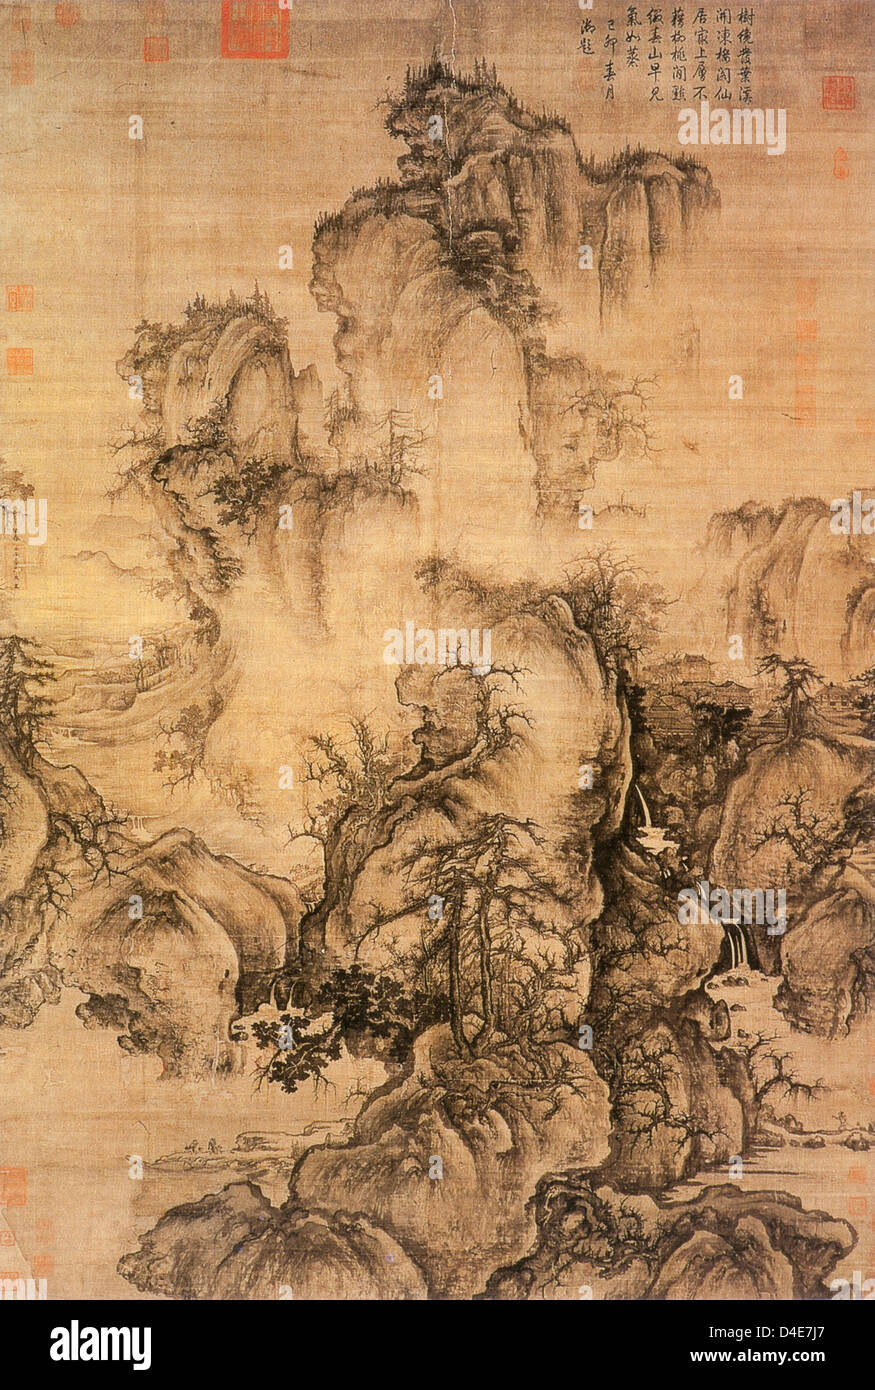 Early Spring, 1072 by Guo Xi ink on silk, National Palace Museum, Taipei - Stock Image